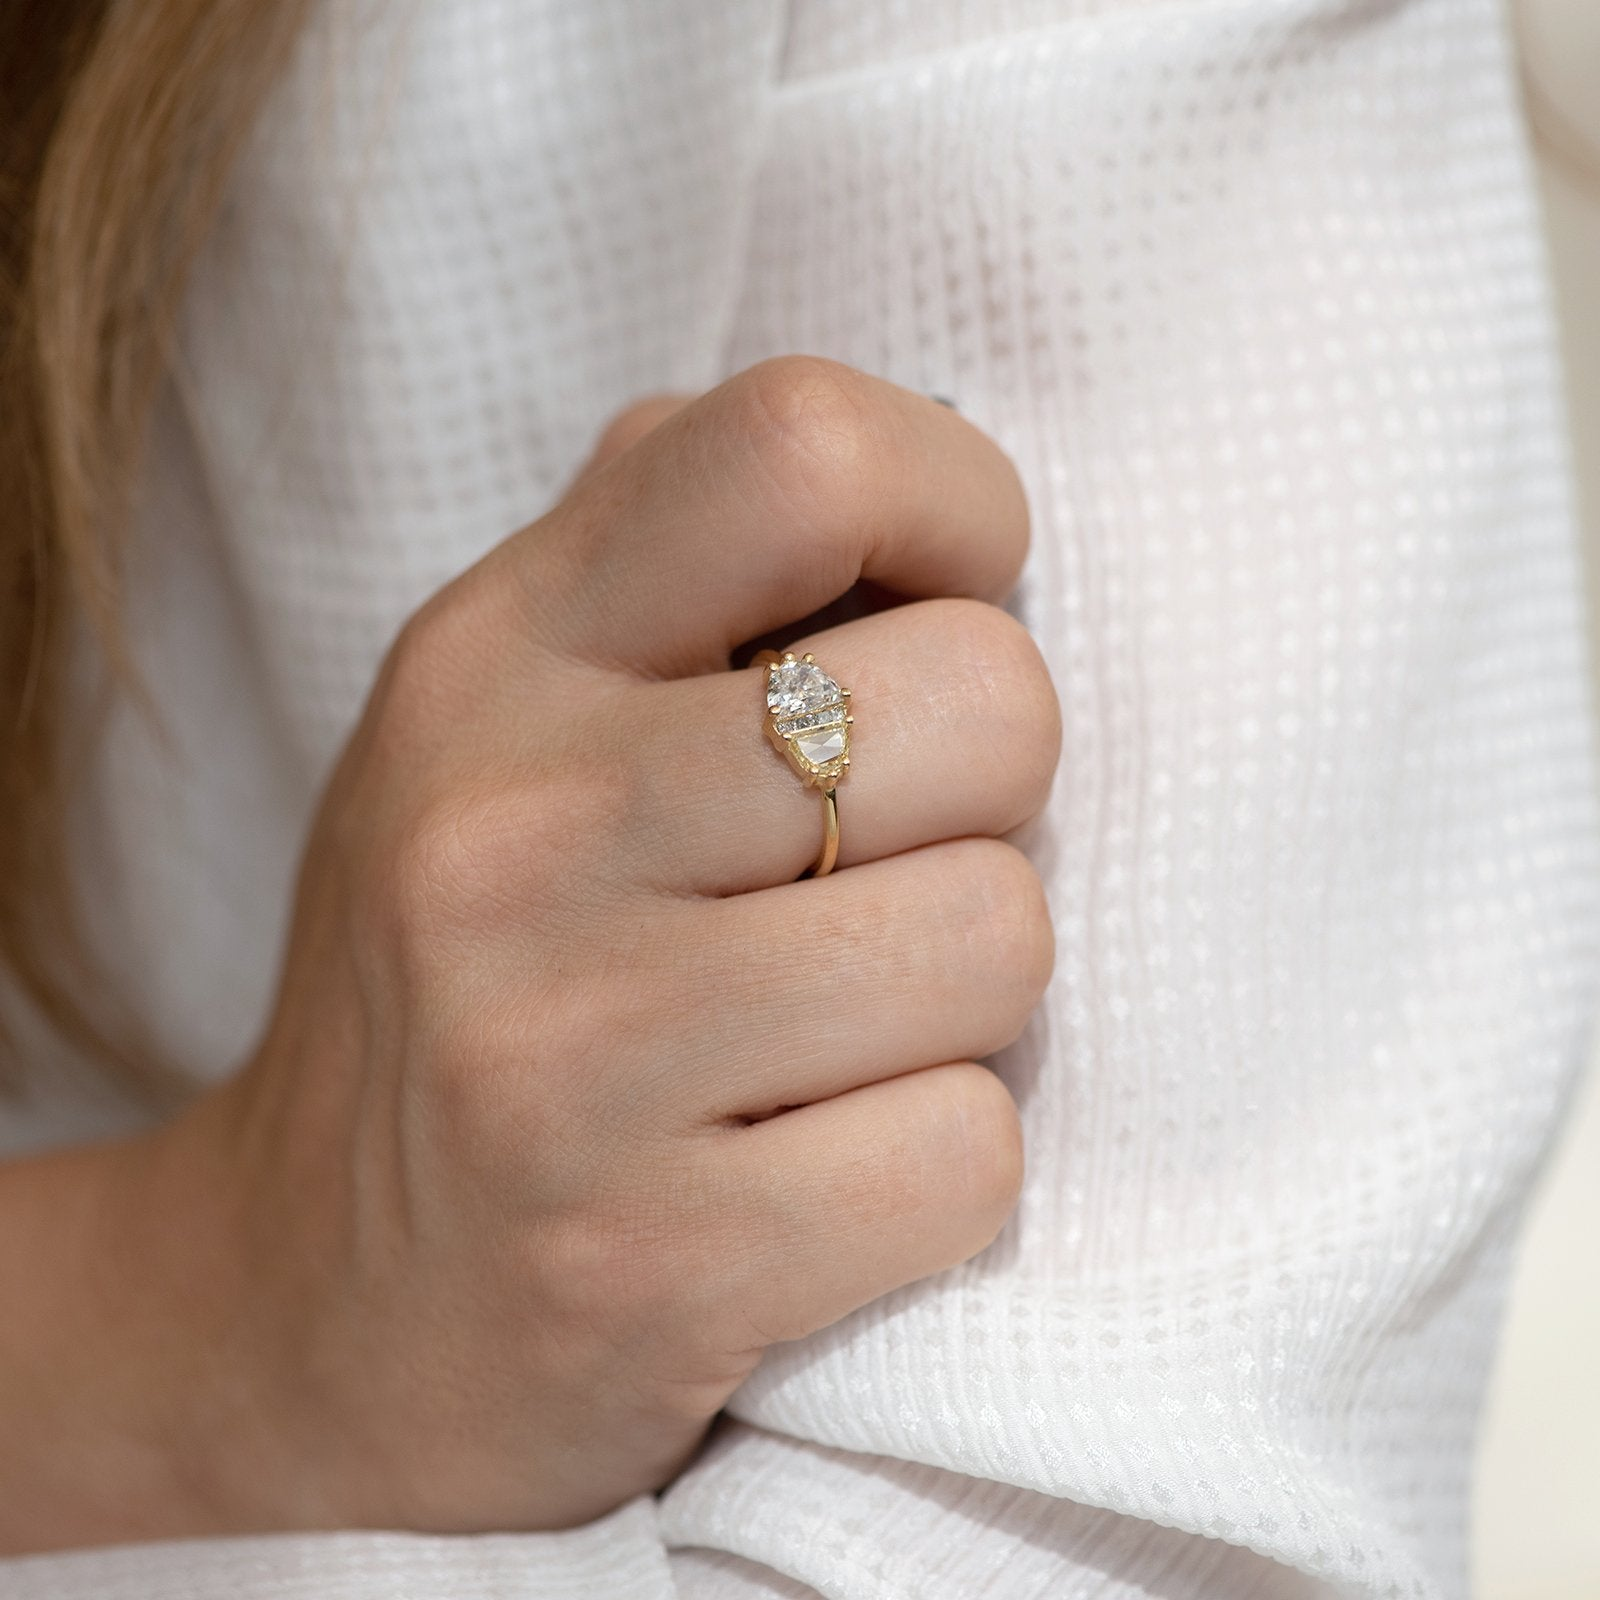 Half Moon Cut Engagement Ring with White, Yellow and Grey Diamonds shoulder finger